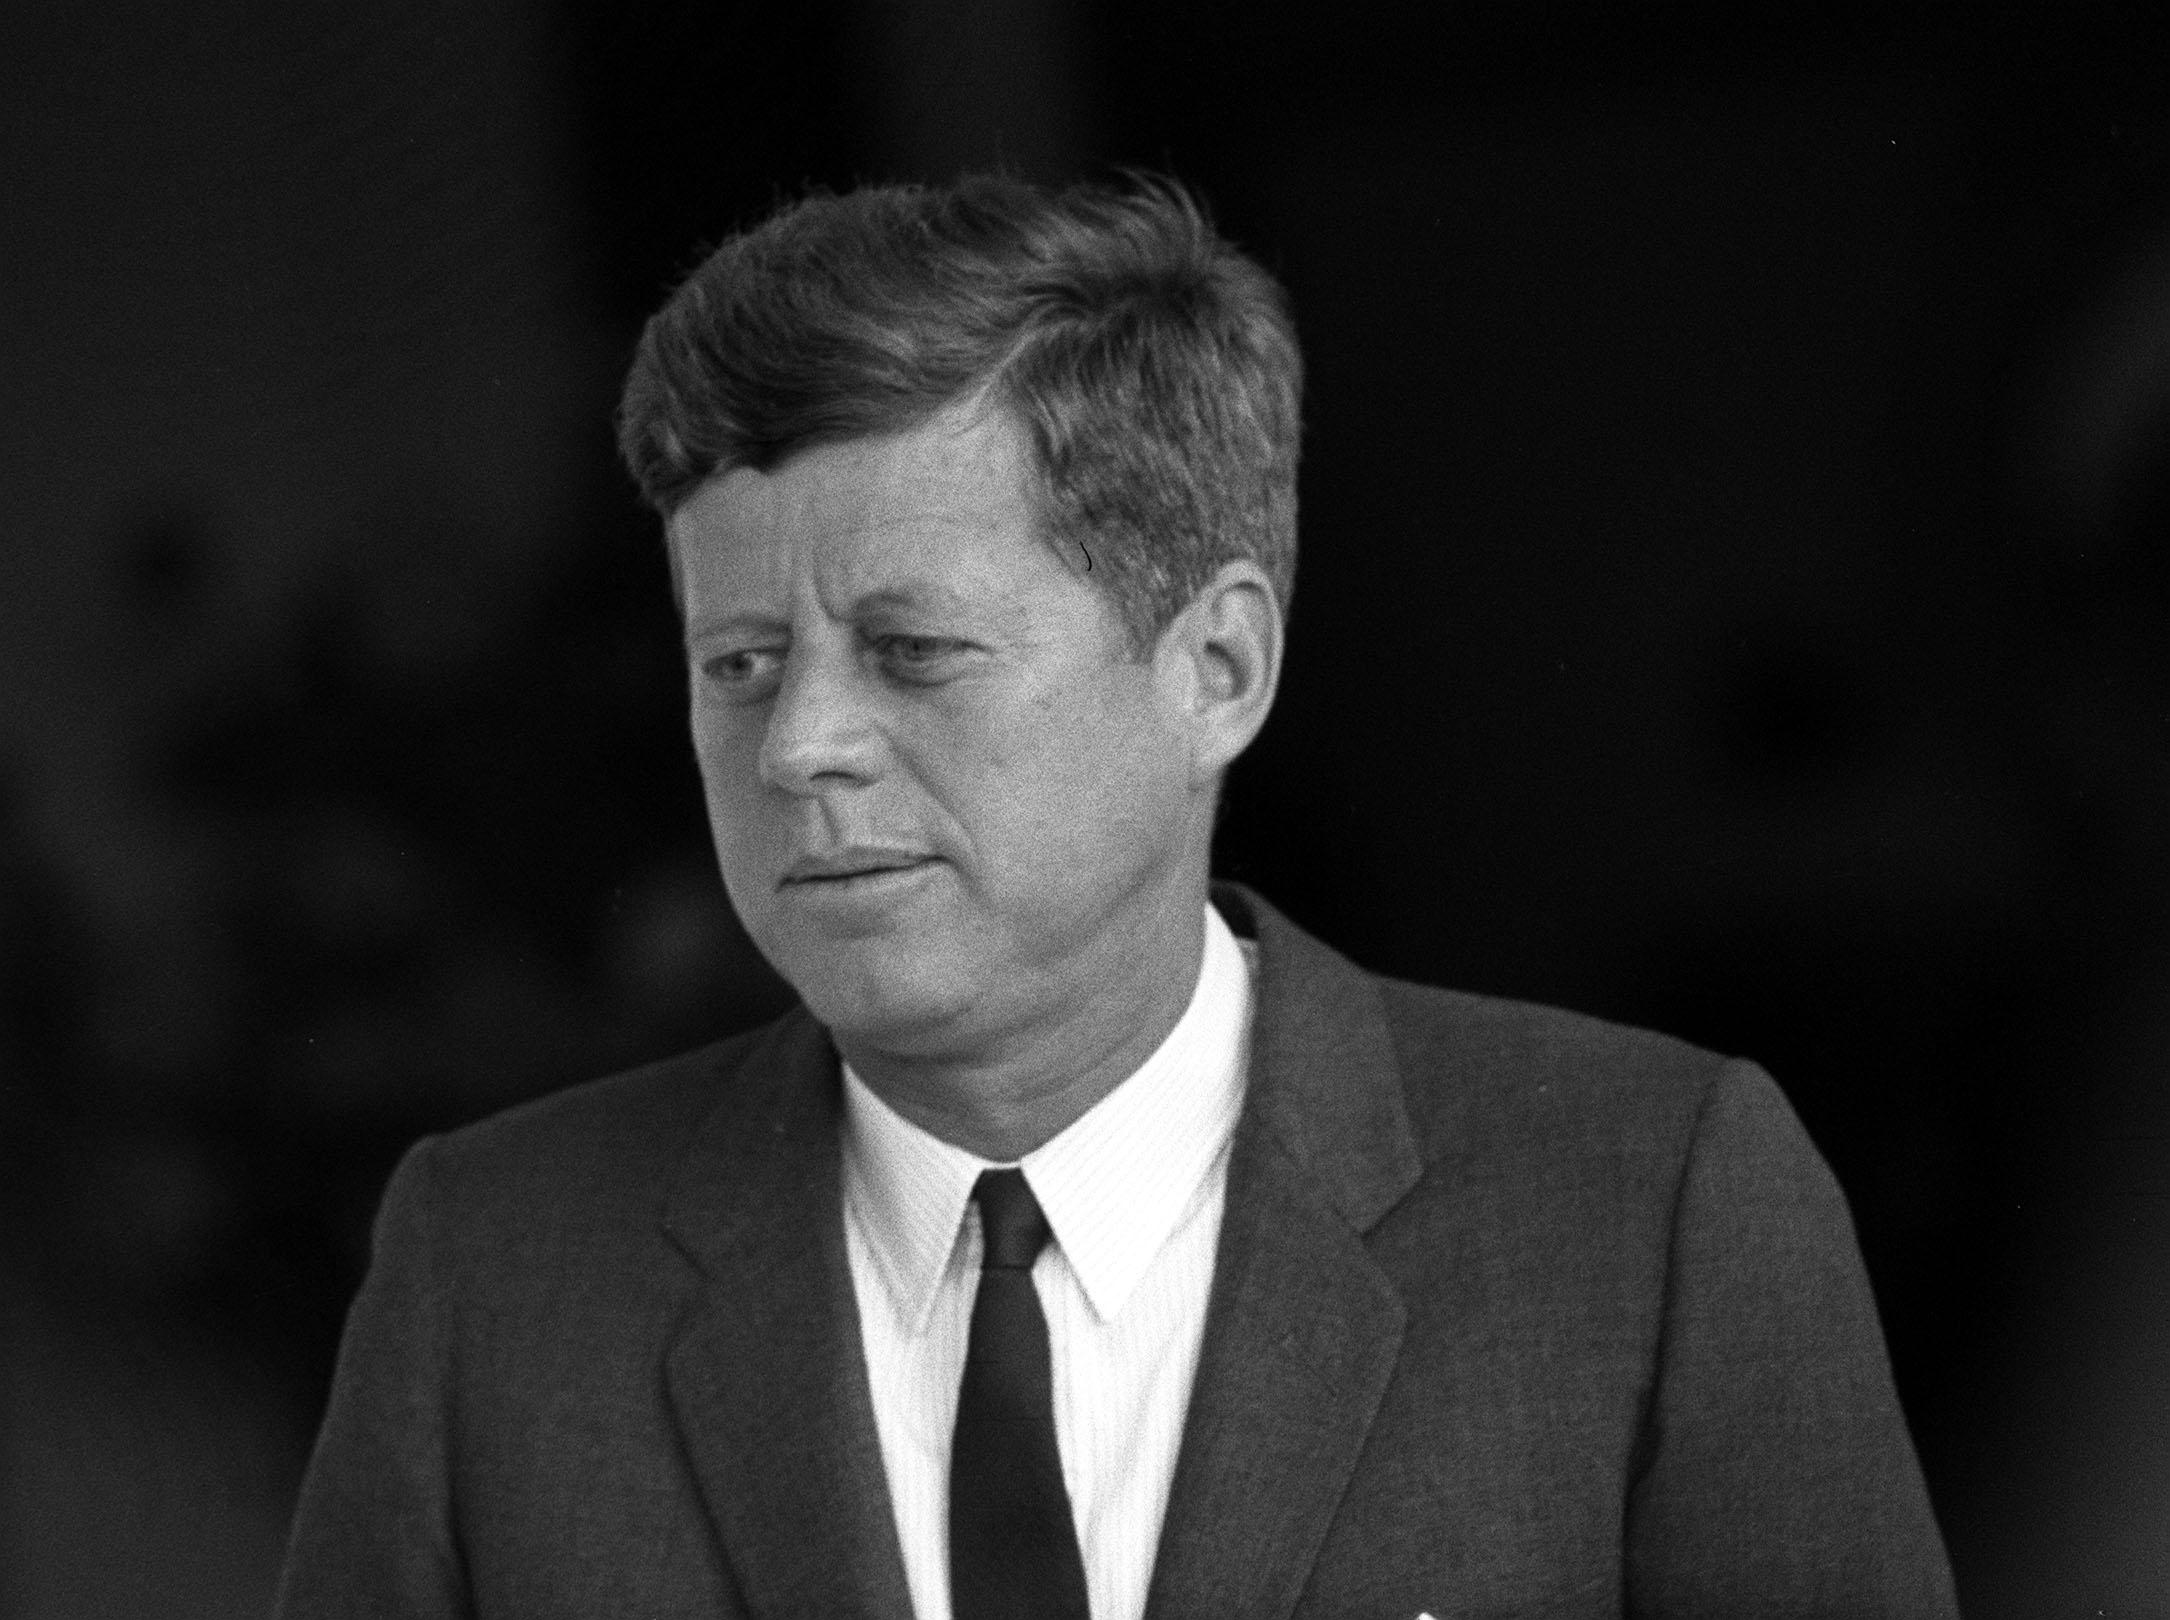 President Donald Trump withholds release of some JFK assassination documents